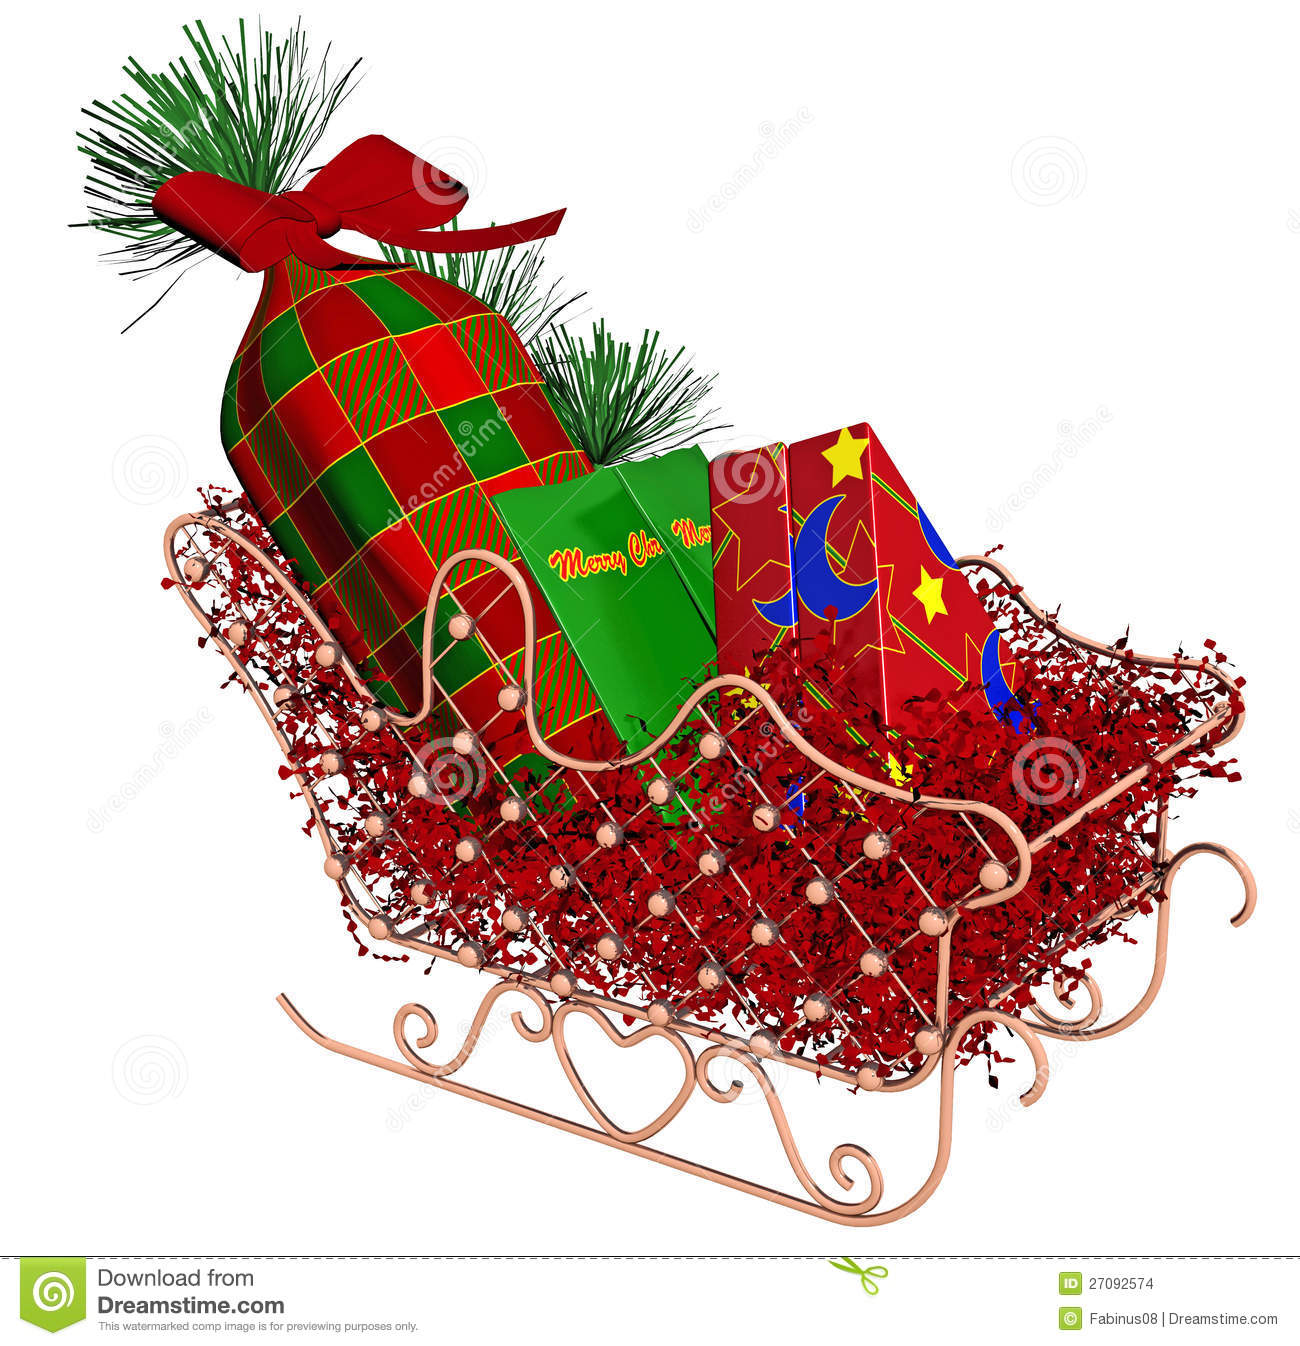 Stock Images: Christmas Sleigh with Gifts. Image: 27092574